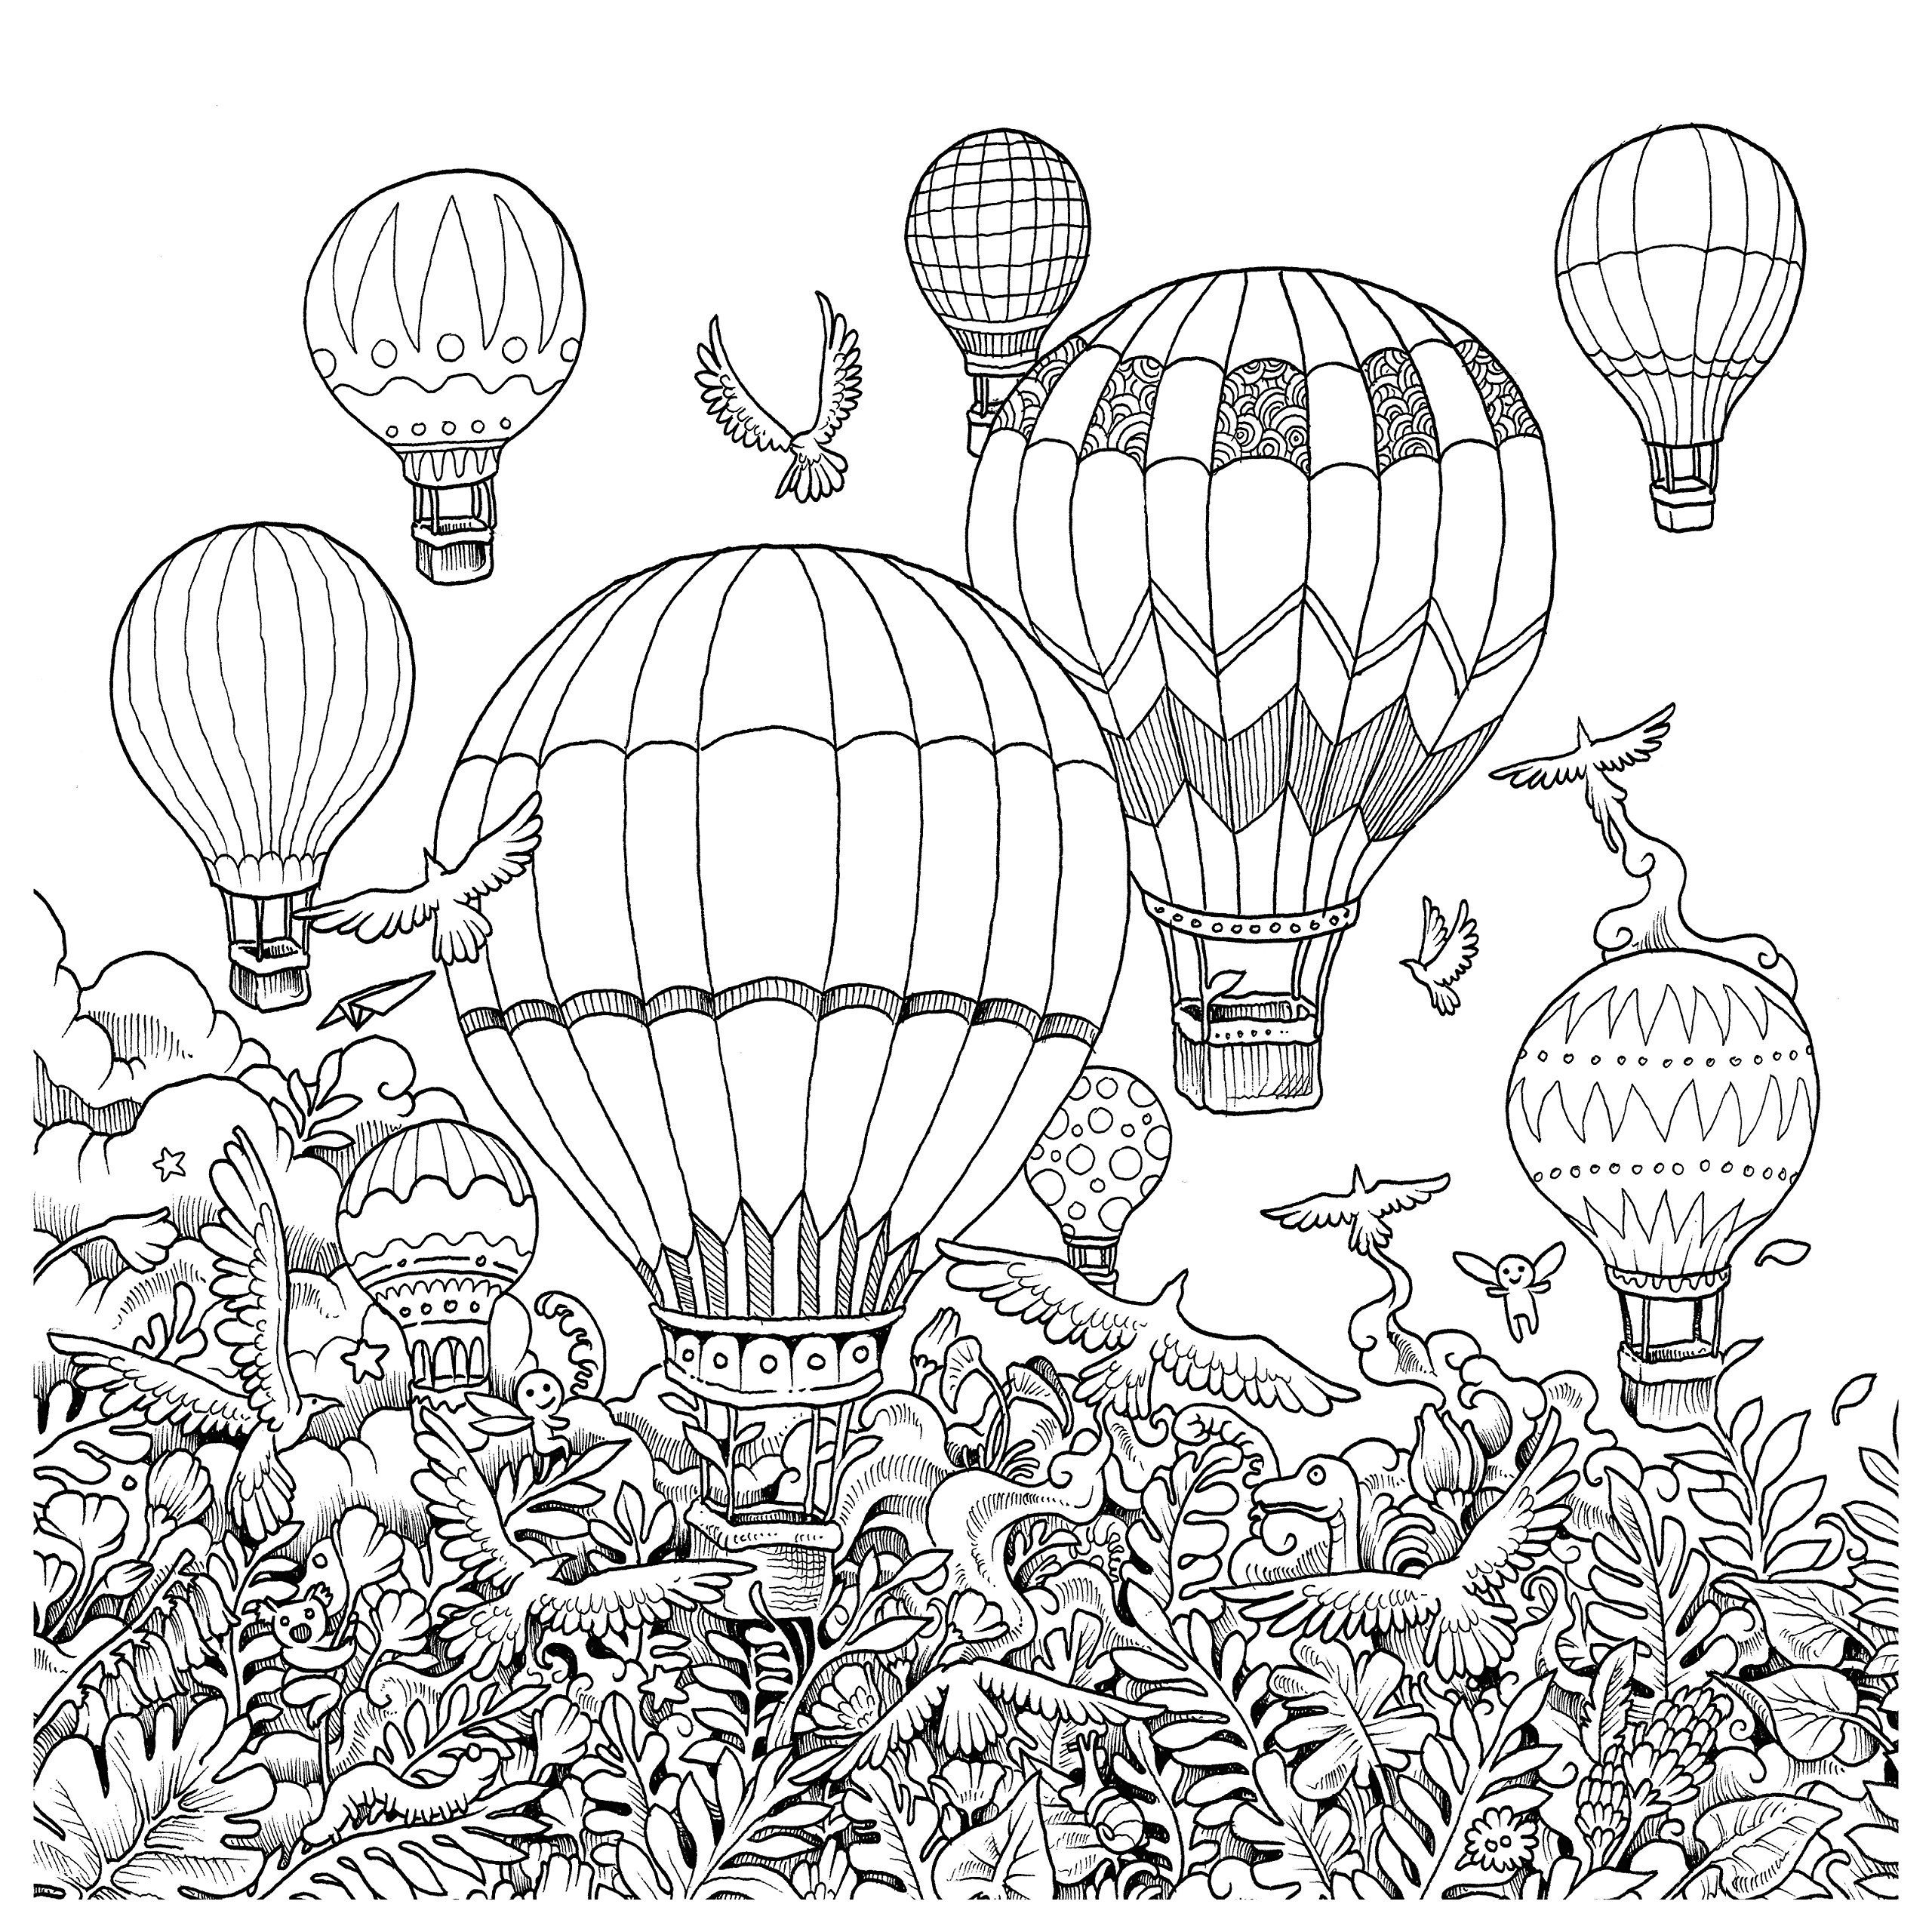 Hot Air Balloon Coloring Pages - Imagimorphia Coloring Pages Coloring Pages Coloring Pages